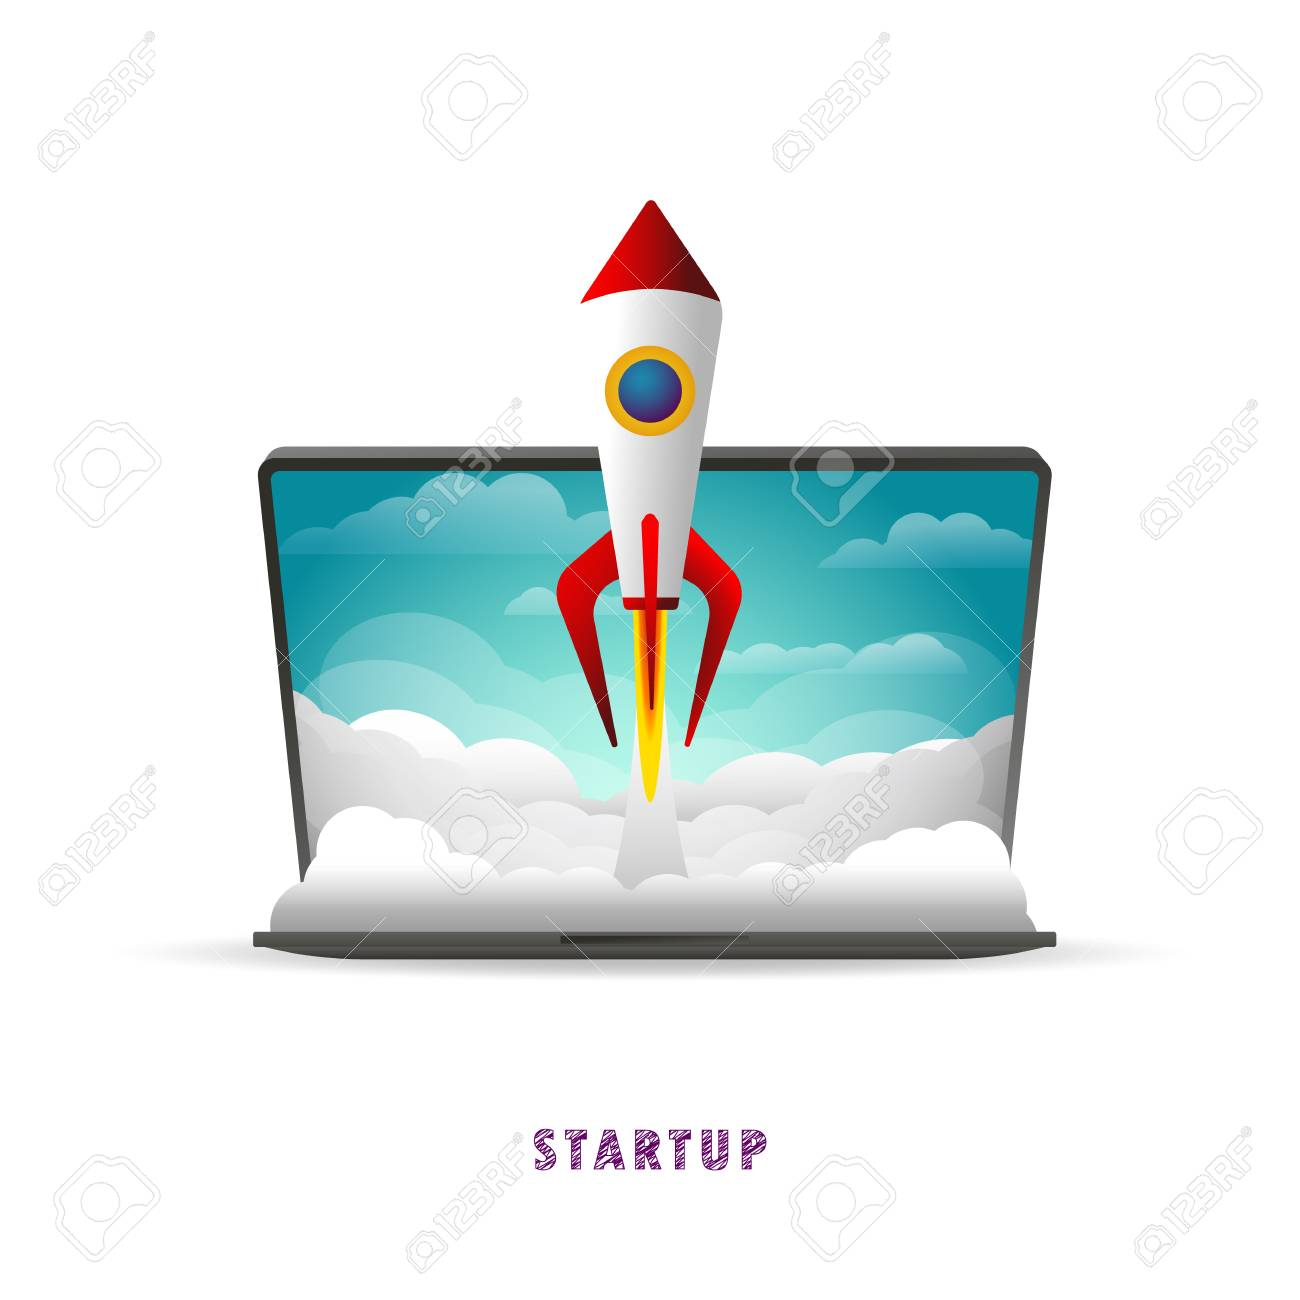 Startup. The rocket takes off from the laptop. Vector illustration. Flat. Slope. Transparent background - 104062237